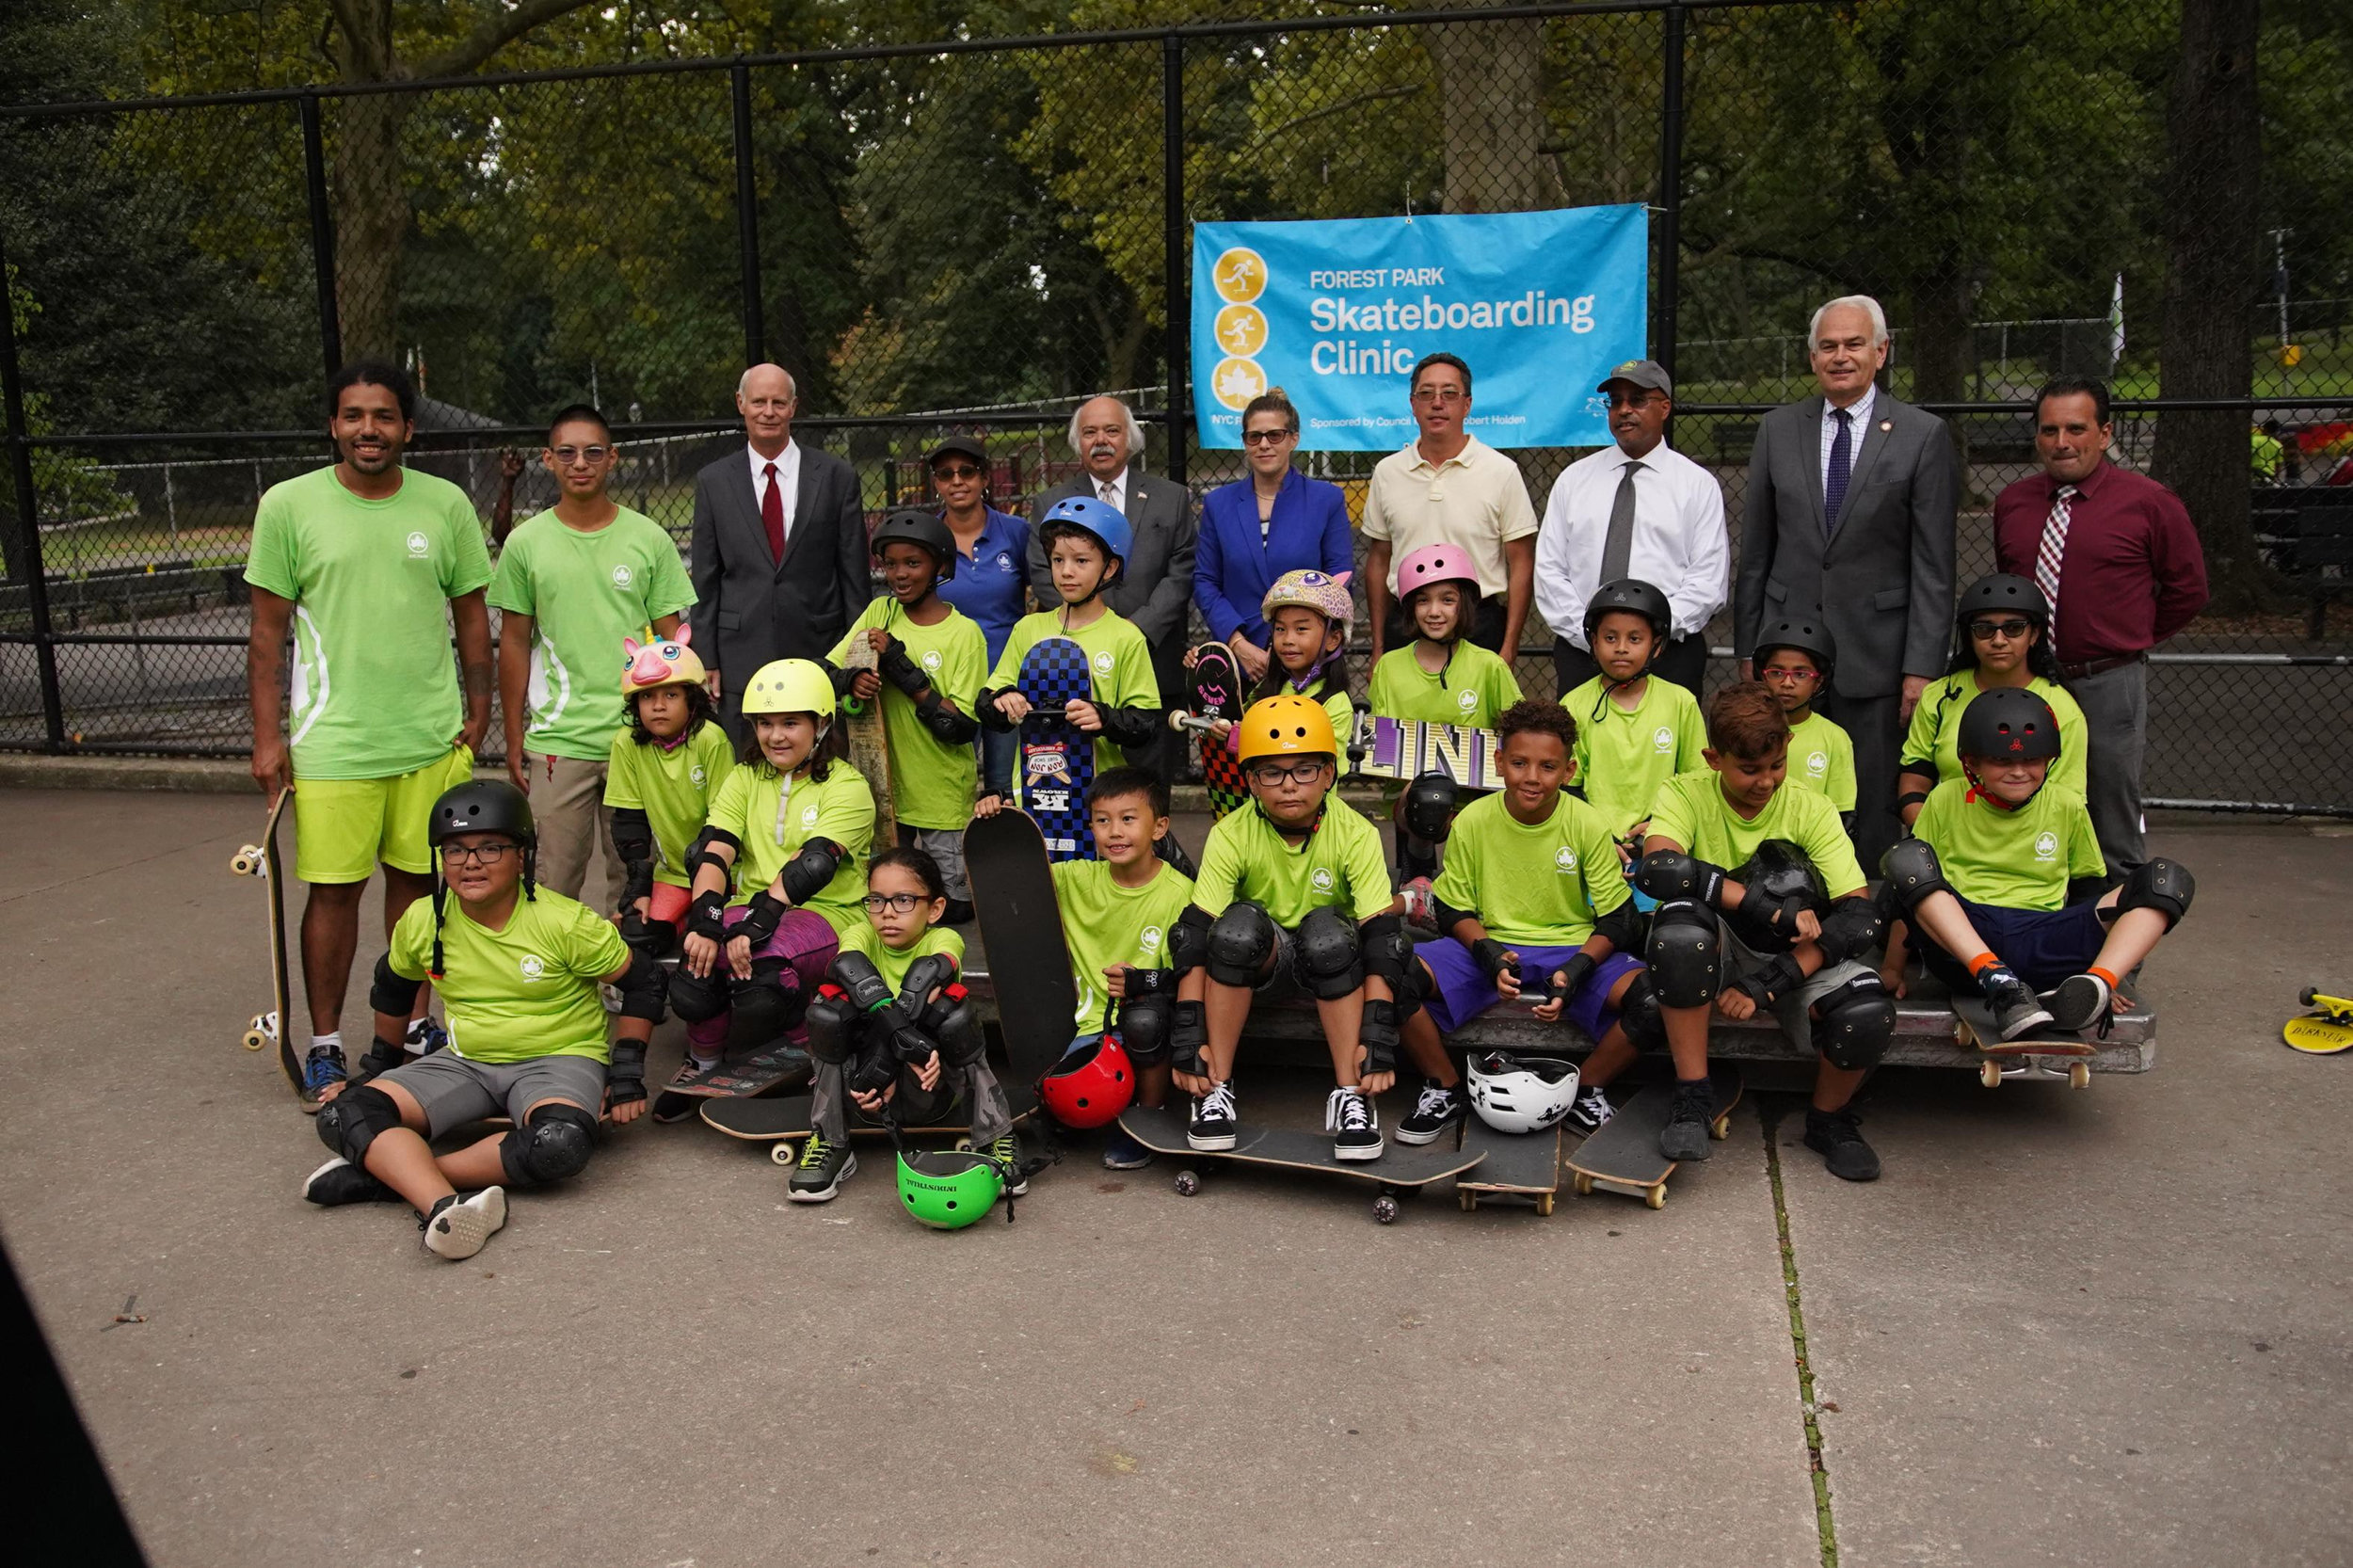 Department celebrated the new additions to the skate park on Aug. 13. Photo via Robert Holden's office